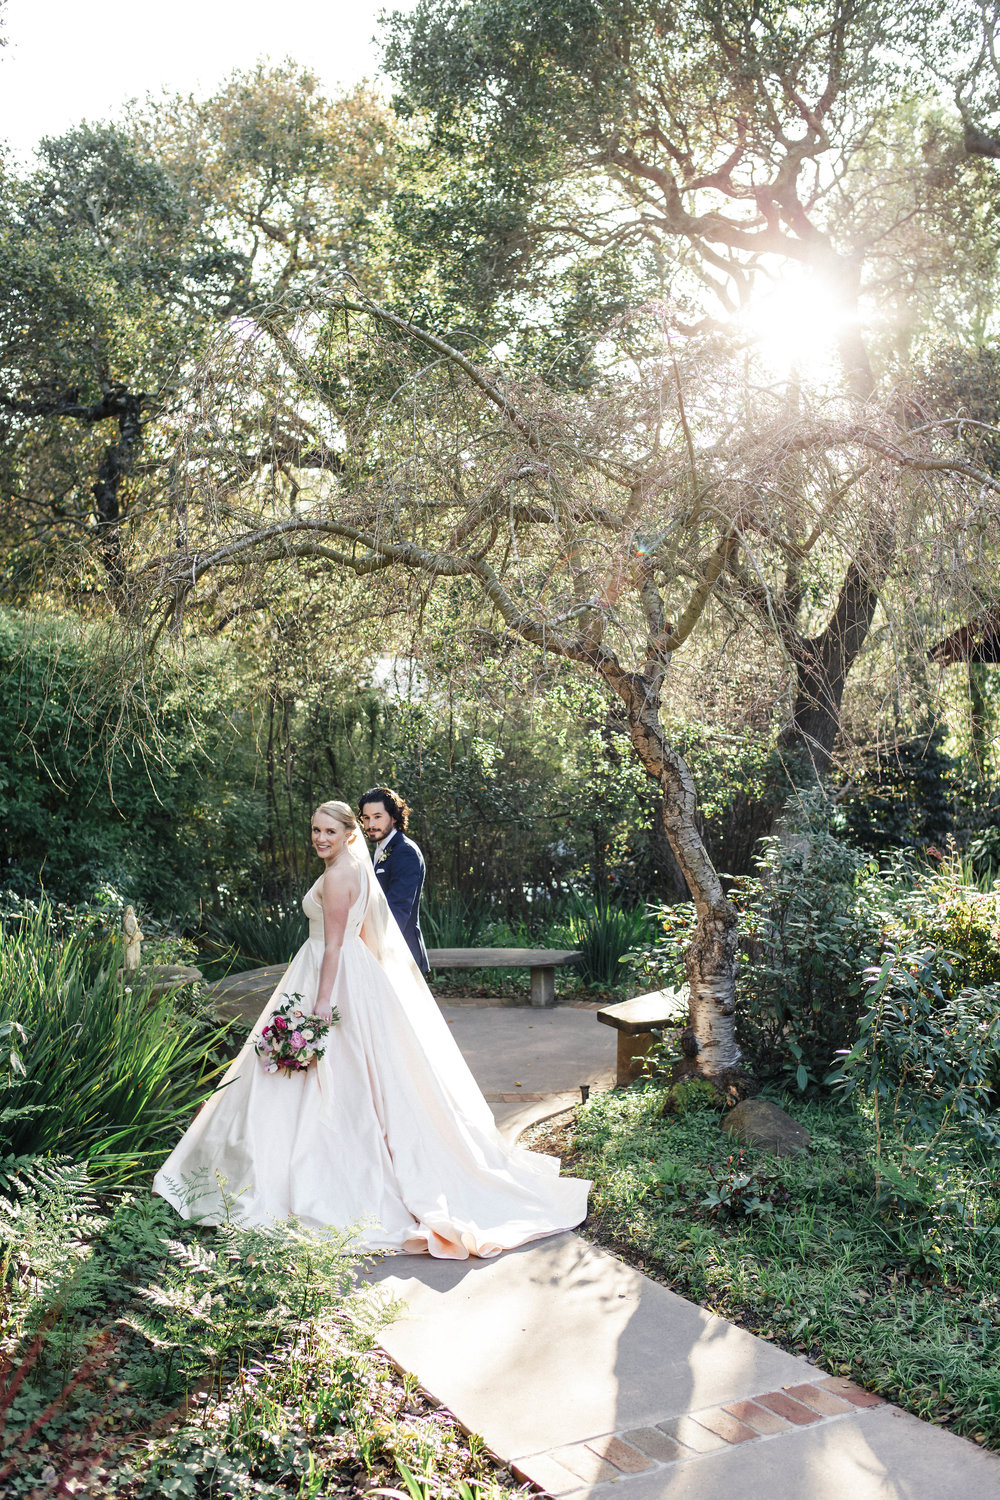 Elegant garden wedding at The Outdoor Art Club in Mill Valley, California with Torrey Fox Photography, Venn Floral, Sage Catering and Oh Splendid Day.